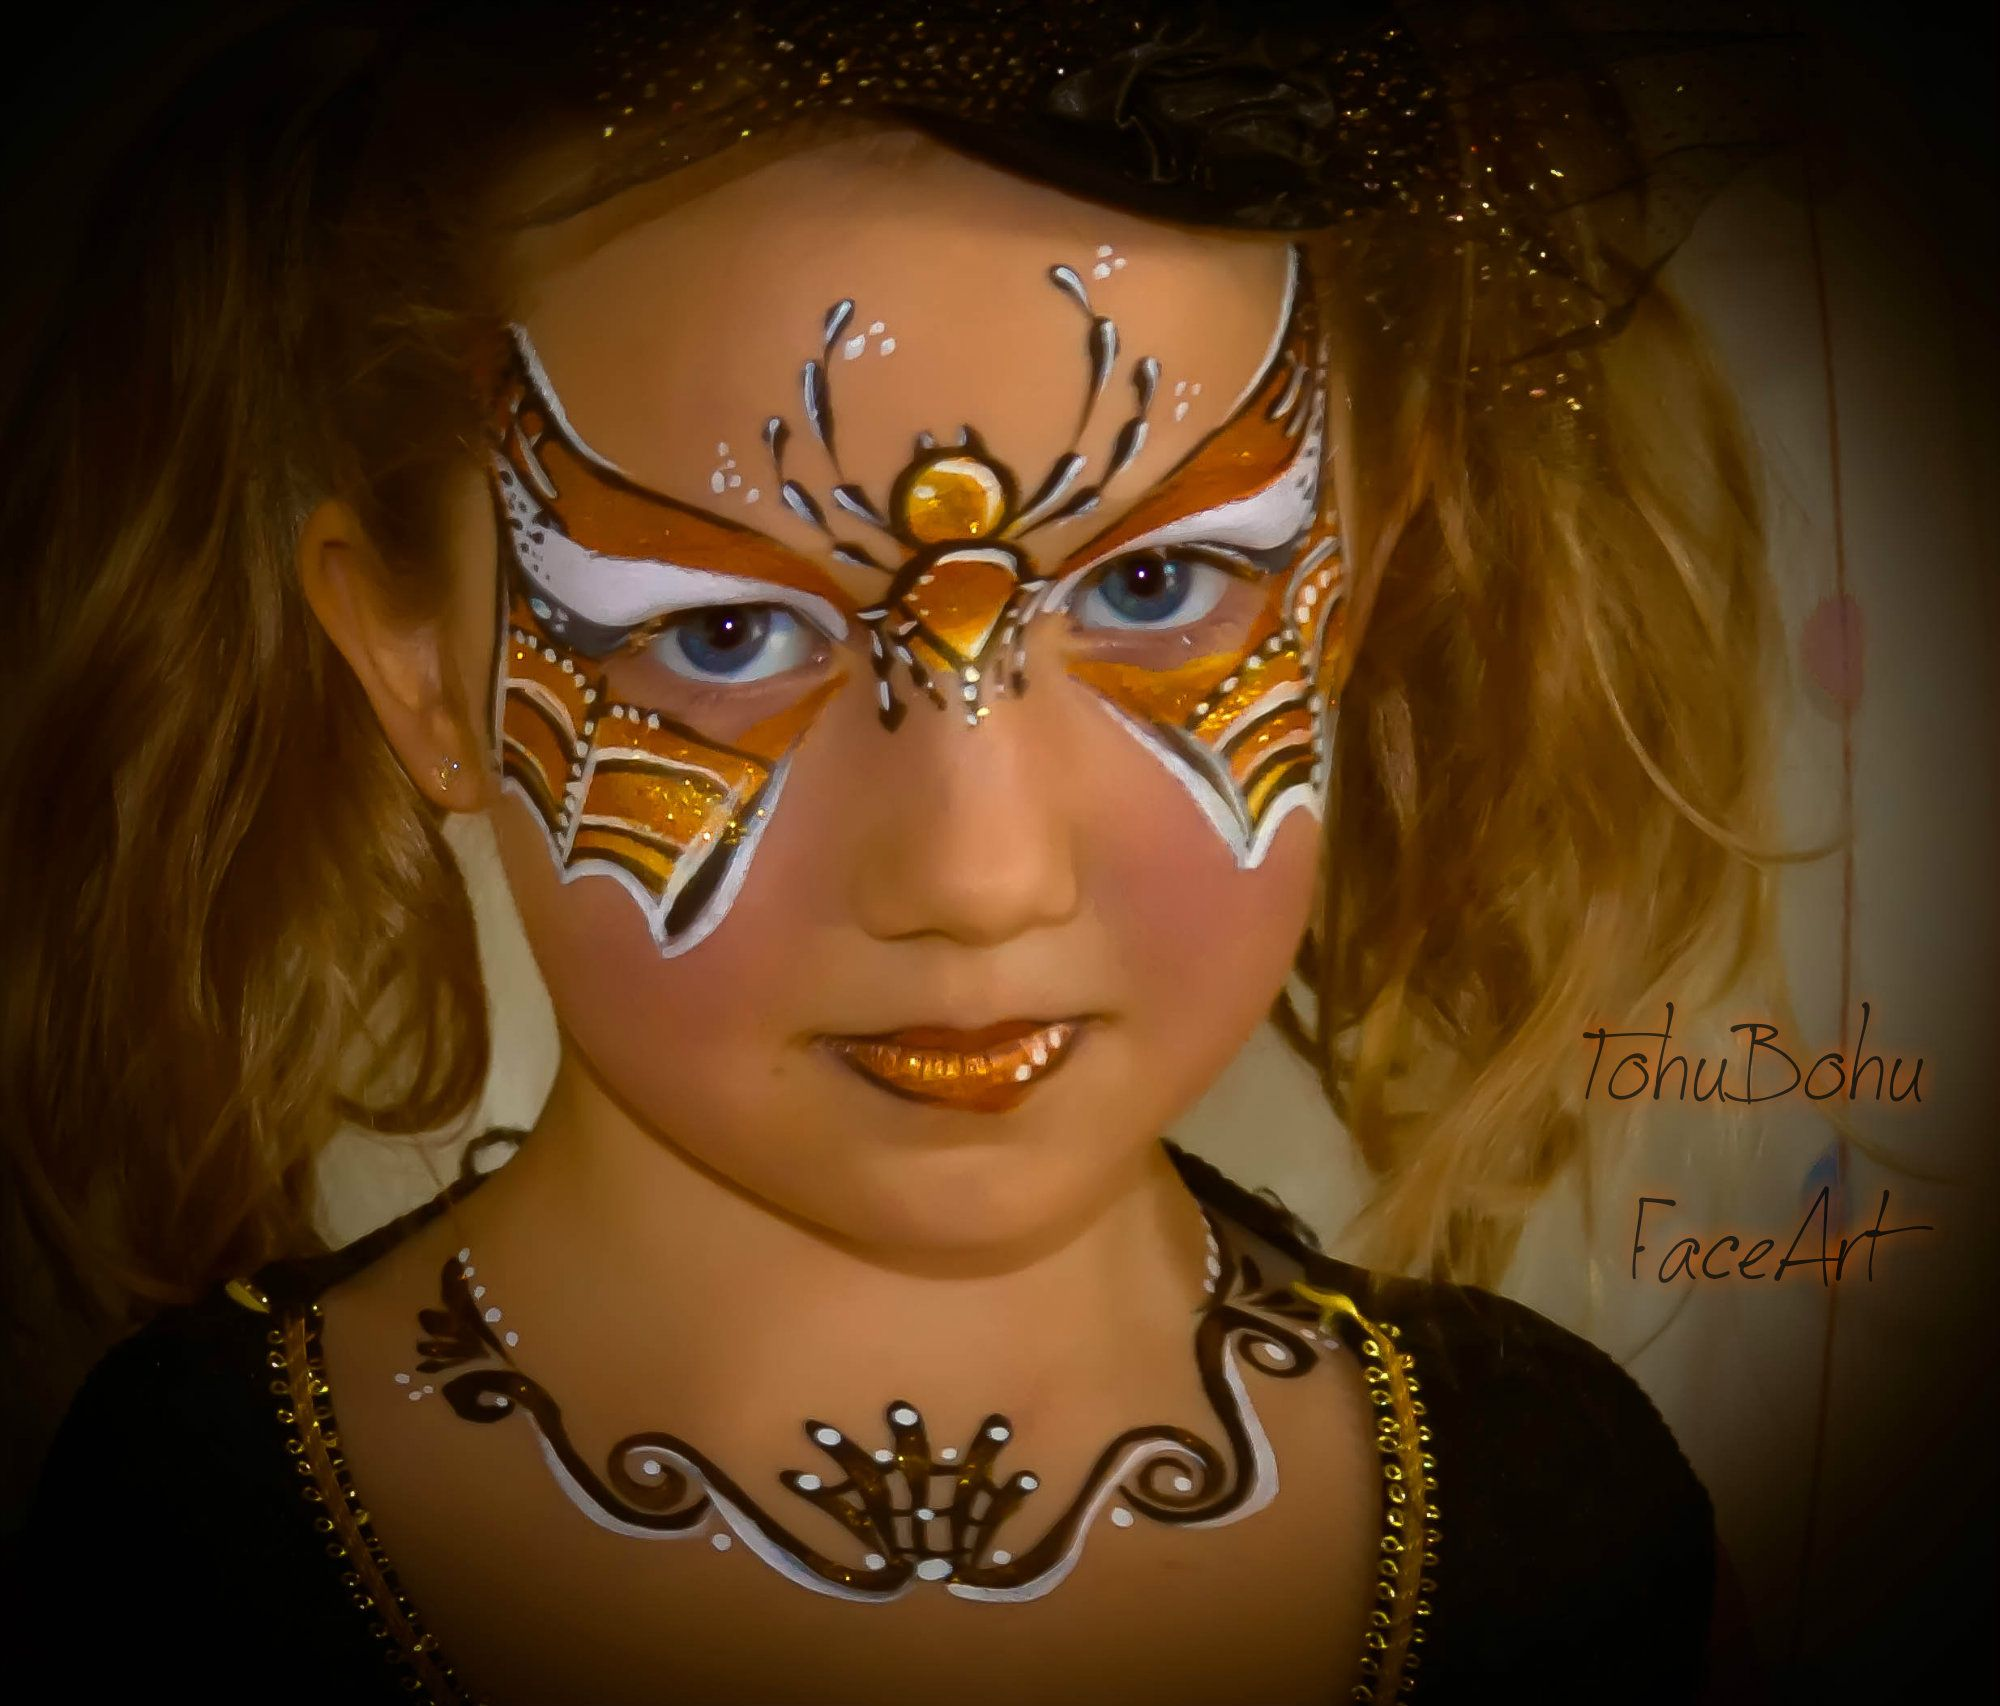 Sorci re d 39 halloween make up for halloween maquillage enfants masque pinterest face - Maquillage simple enfant ...